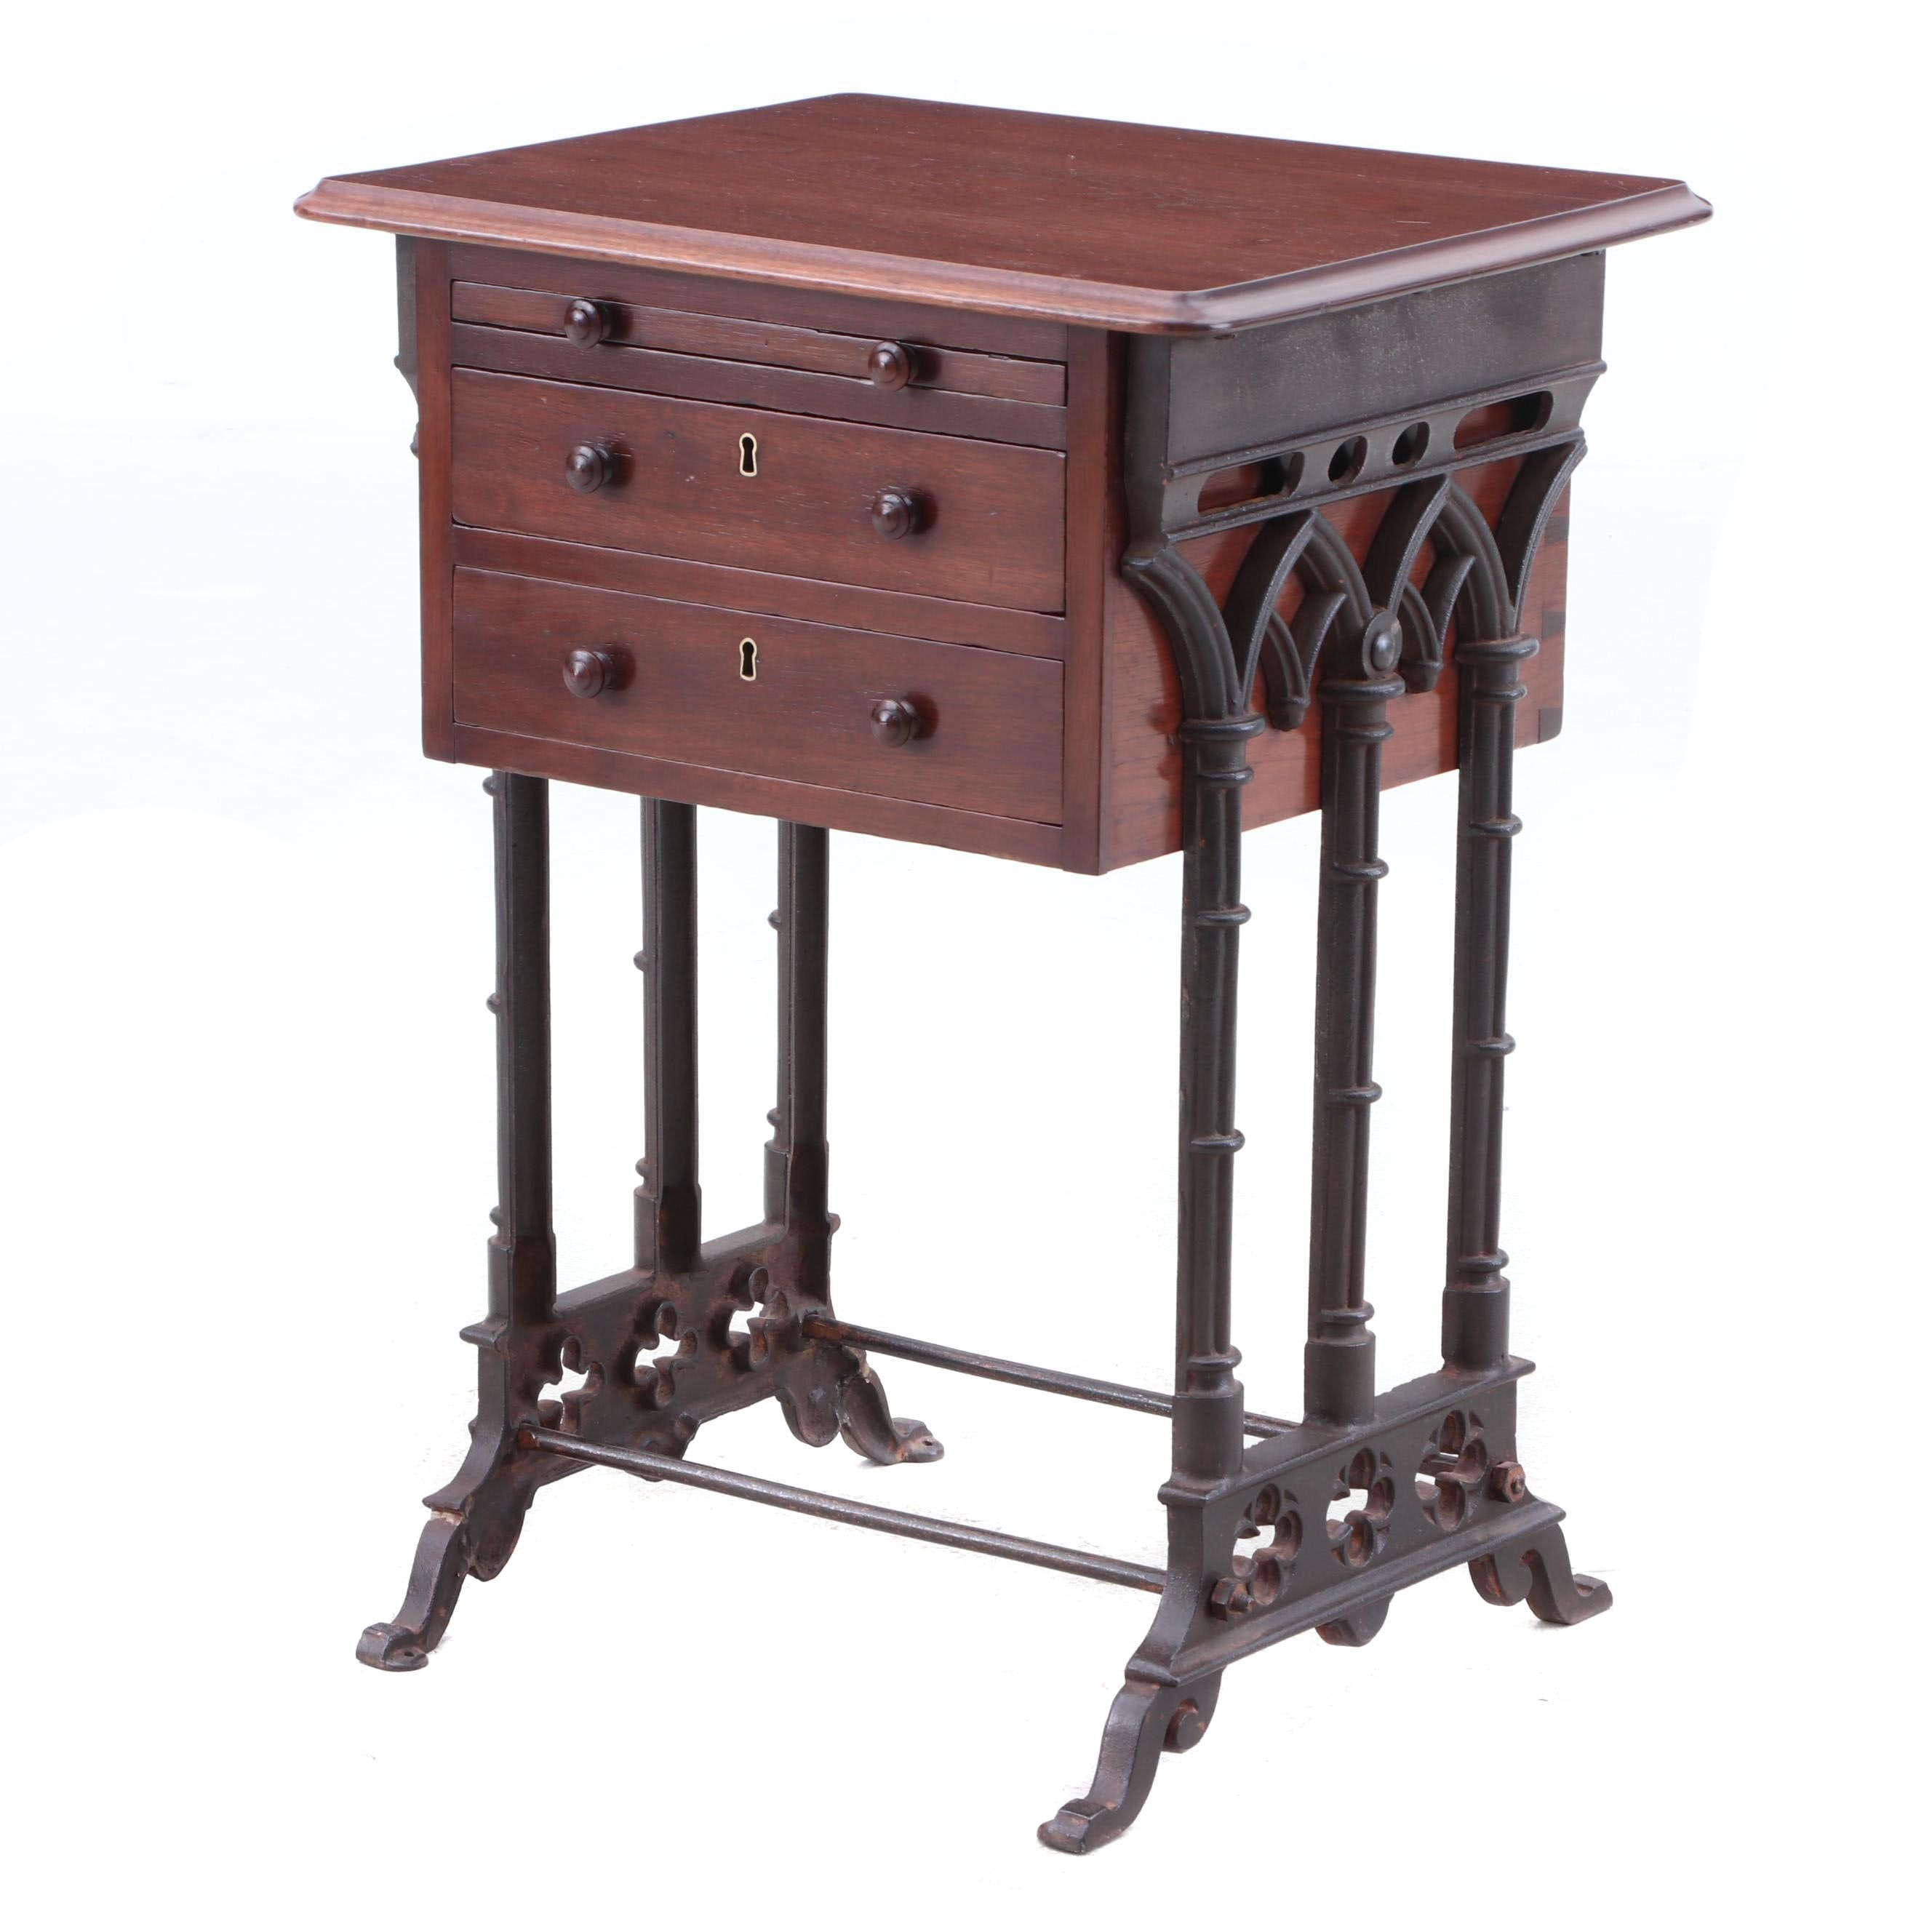 Mahogany and Cast Iron Sewing Table, Late 19th Century